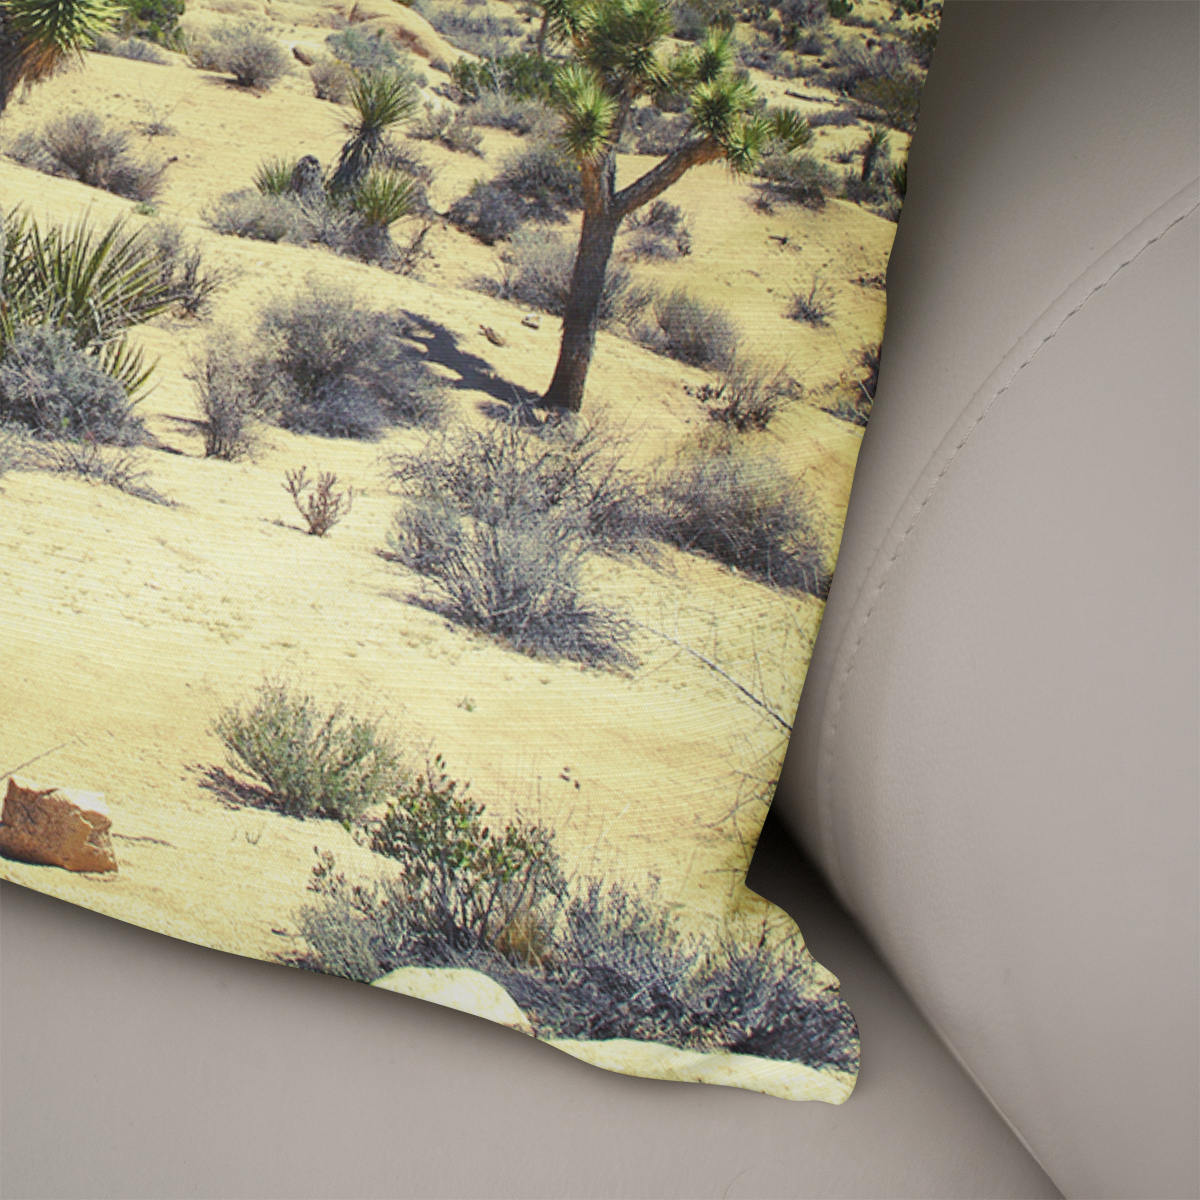 Desert Decadence, Joshua Tree Decorative Throw Pillow - 5 Sizes